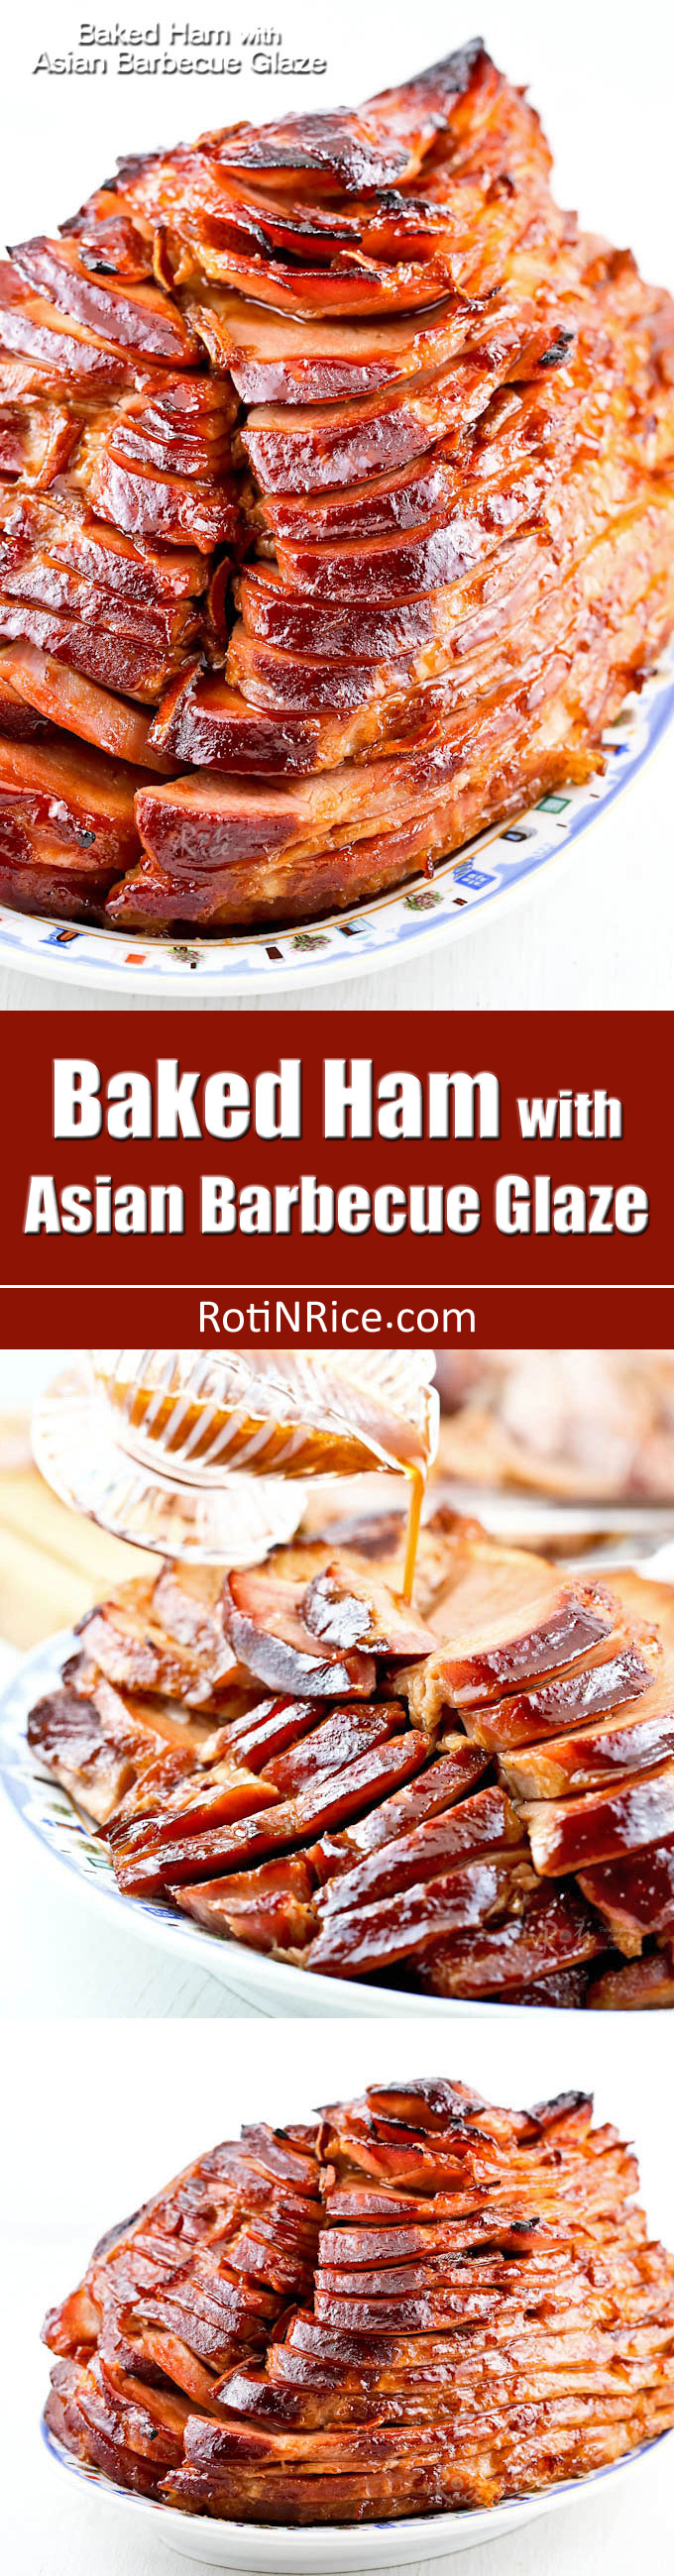 Baked Ham with Asian Barbecue Glaze made of hoisin sauce and dried clementine peel. Beautifully caramelized and perfect for any occasion. | RotiNRice.com